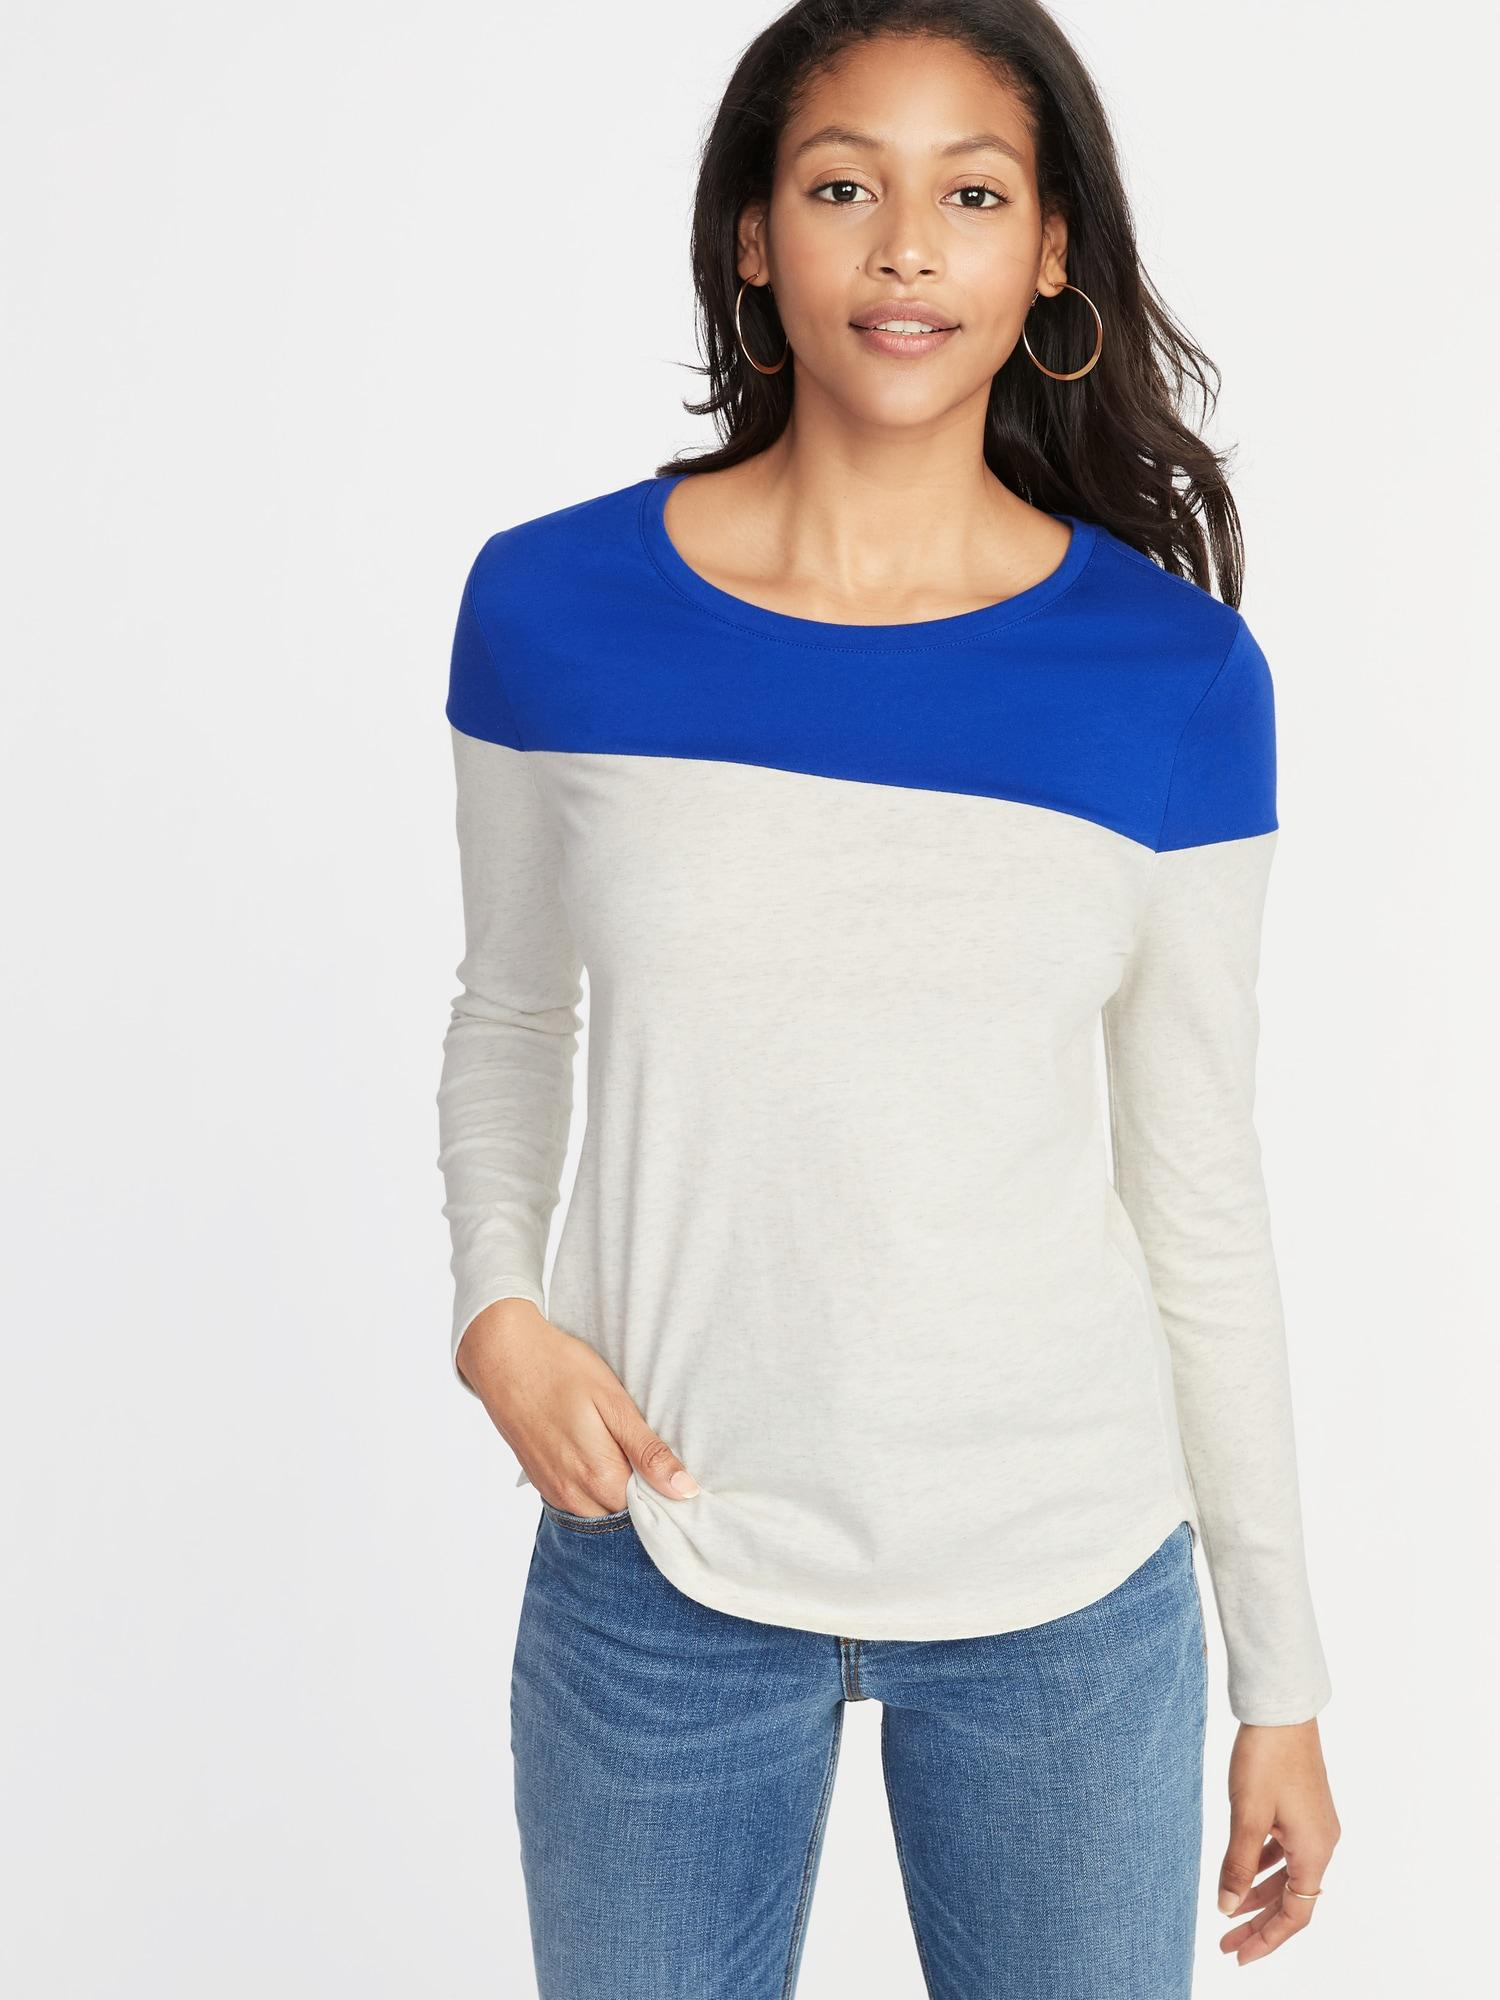 b481e5ea042 Lyst - Old Navy Everywear Color-block Tee in Blue